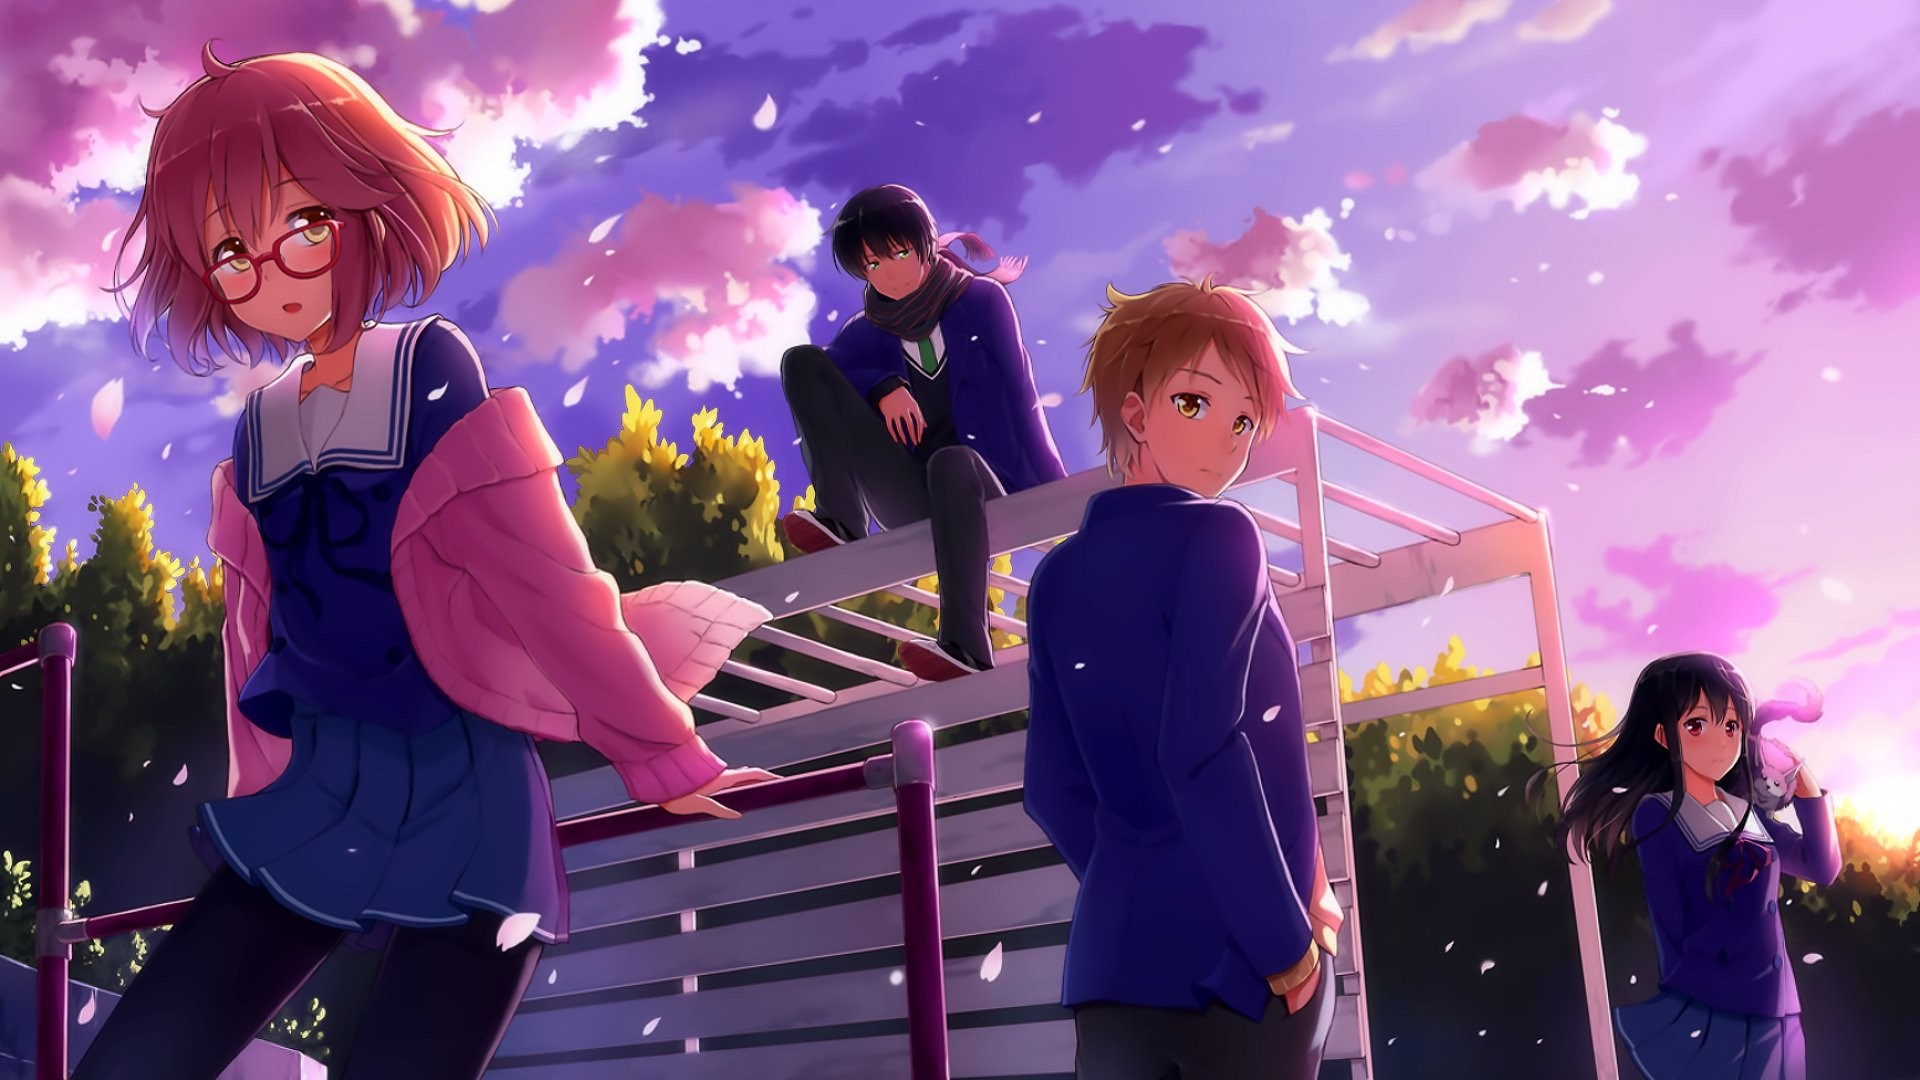 Beyond The Boundary Wallpaper Download Free Stunning High